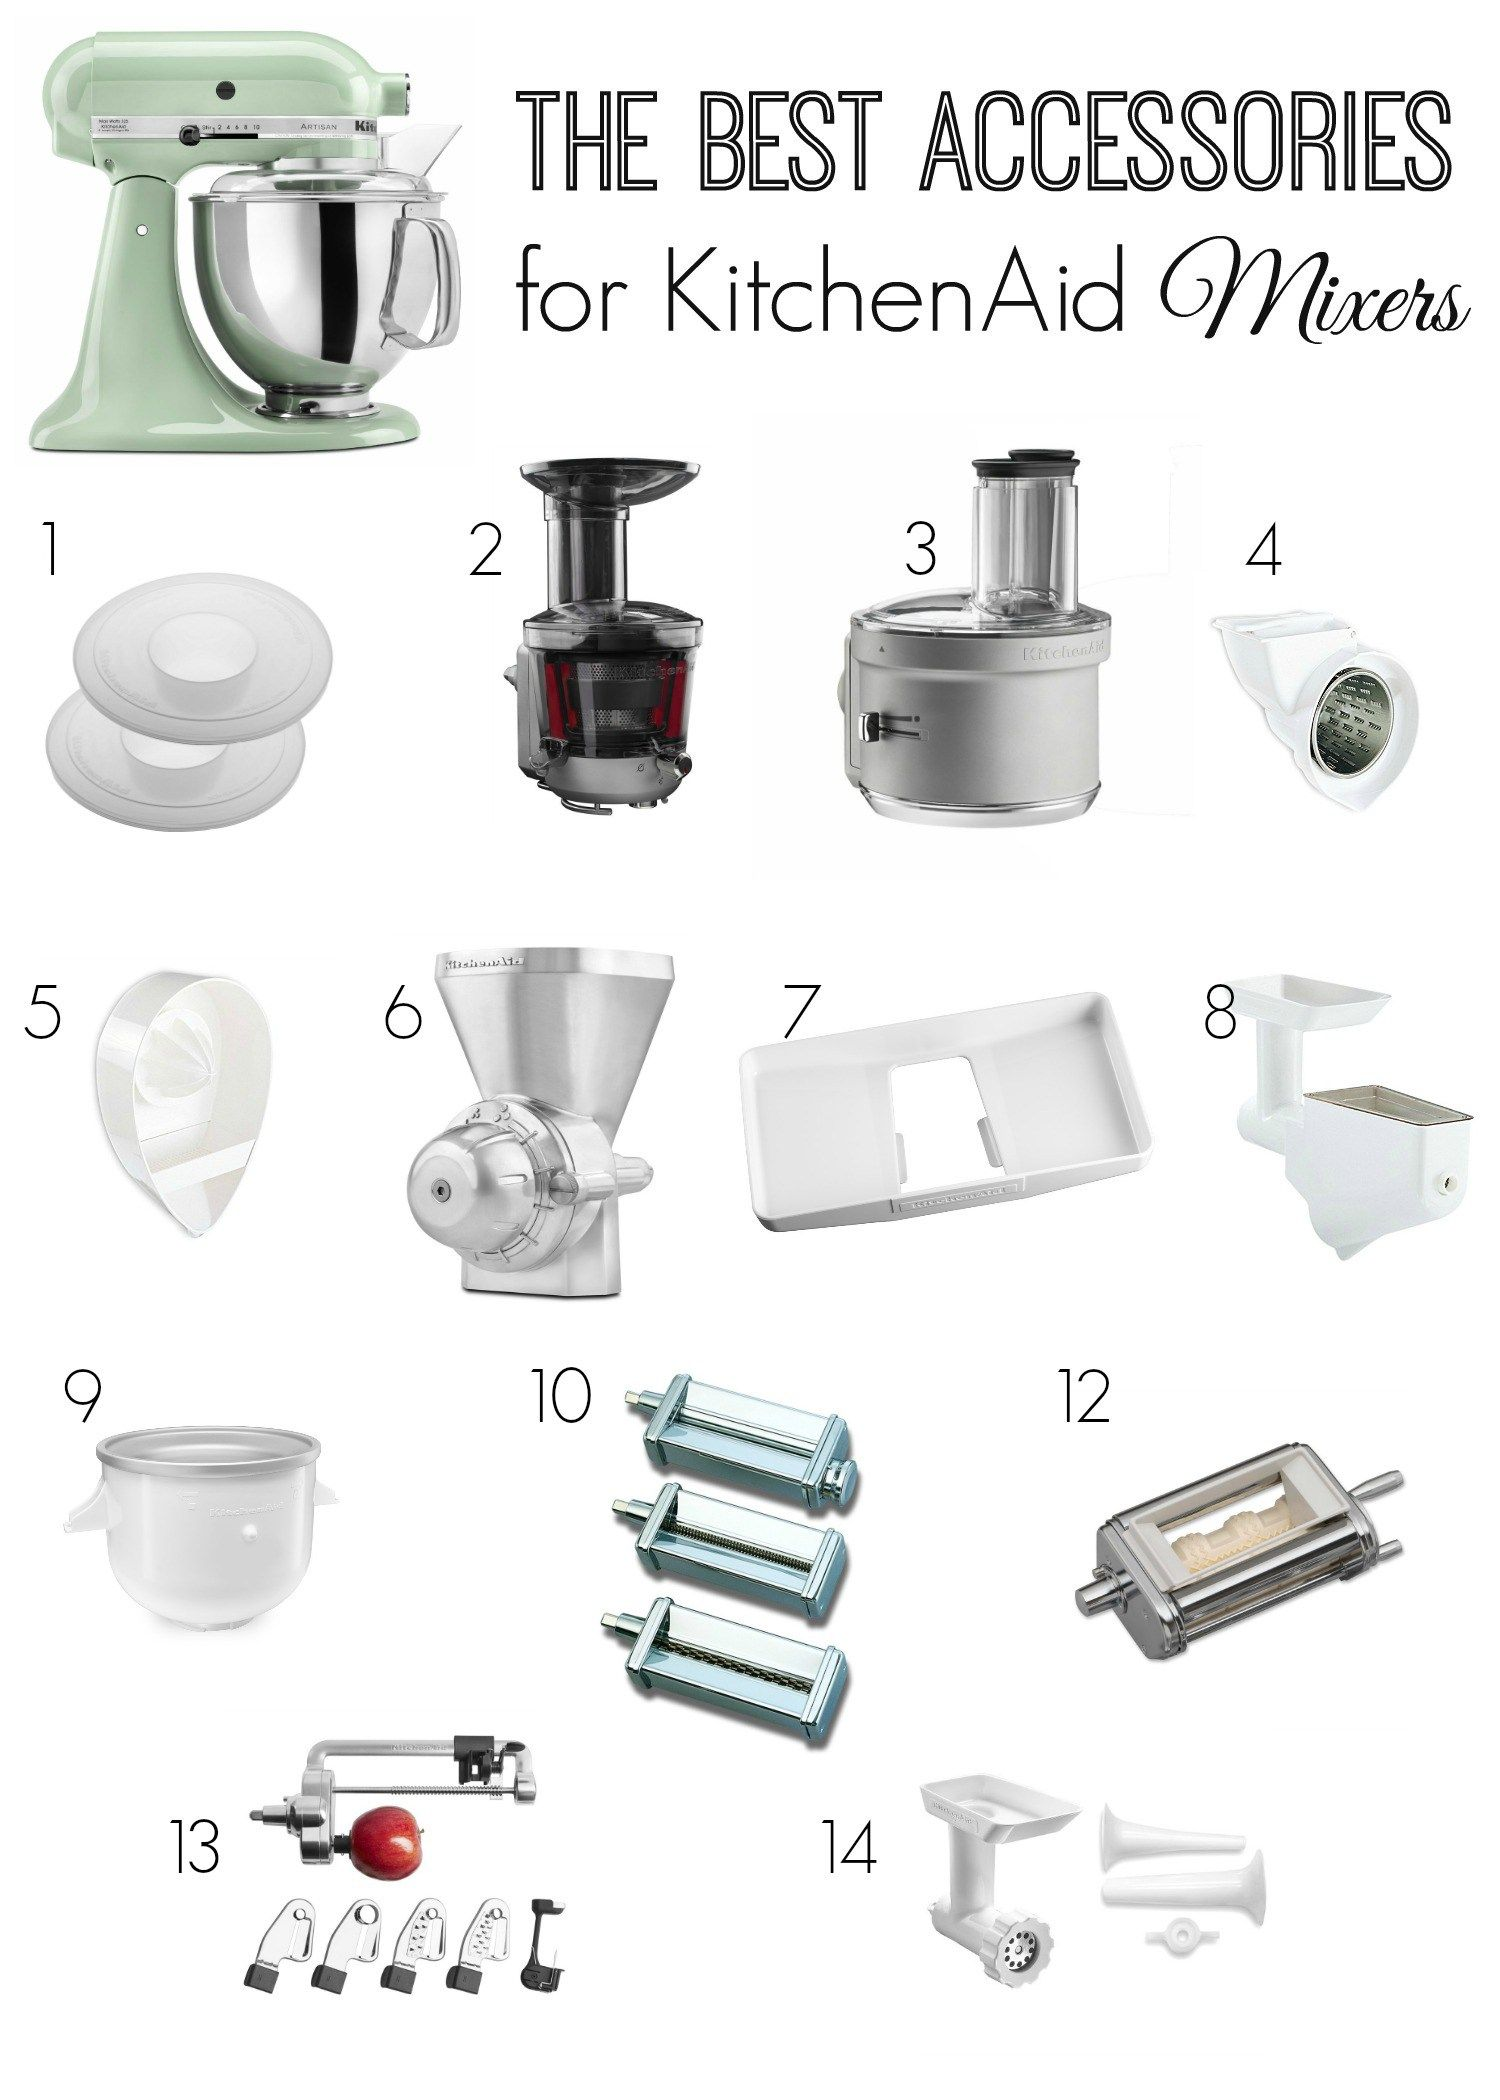 kitchen aid mixer attachments delta faucet repair parts best accessories for kitchenaid mixers the naughty mommy home